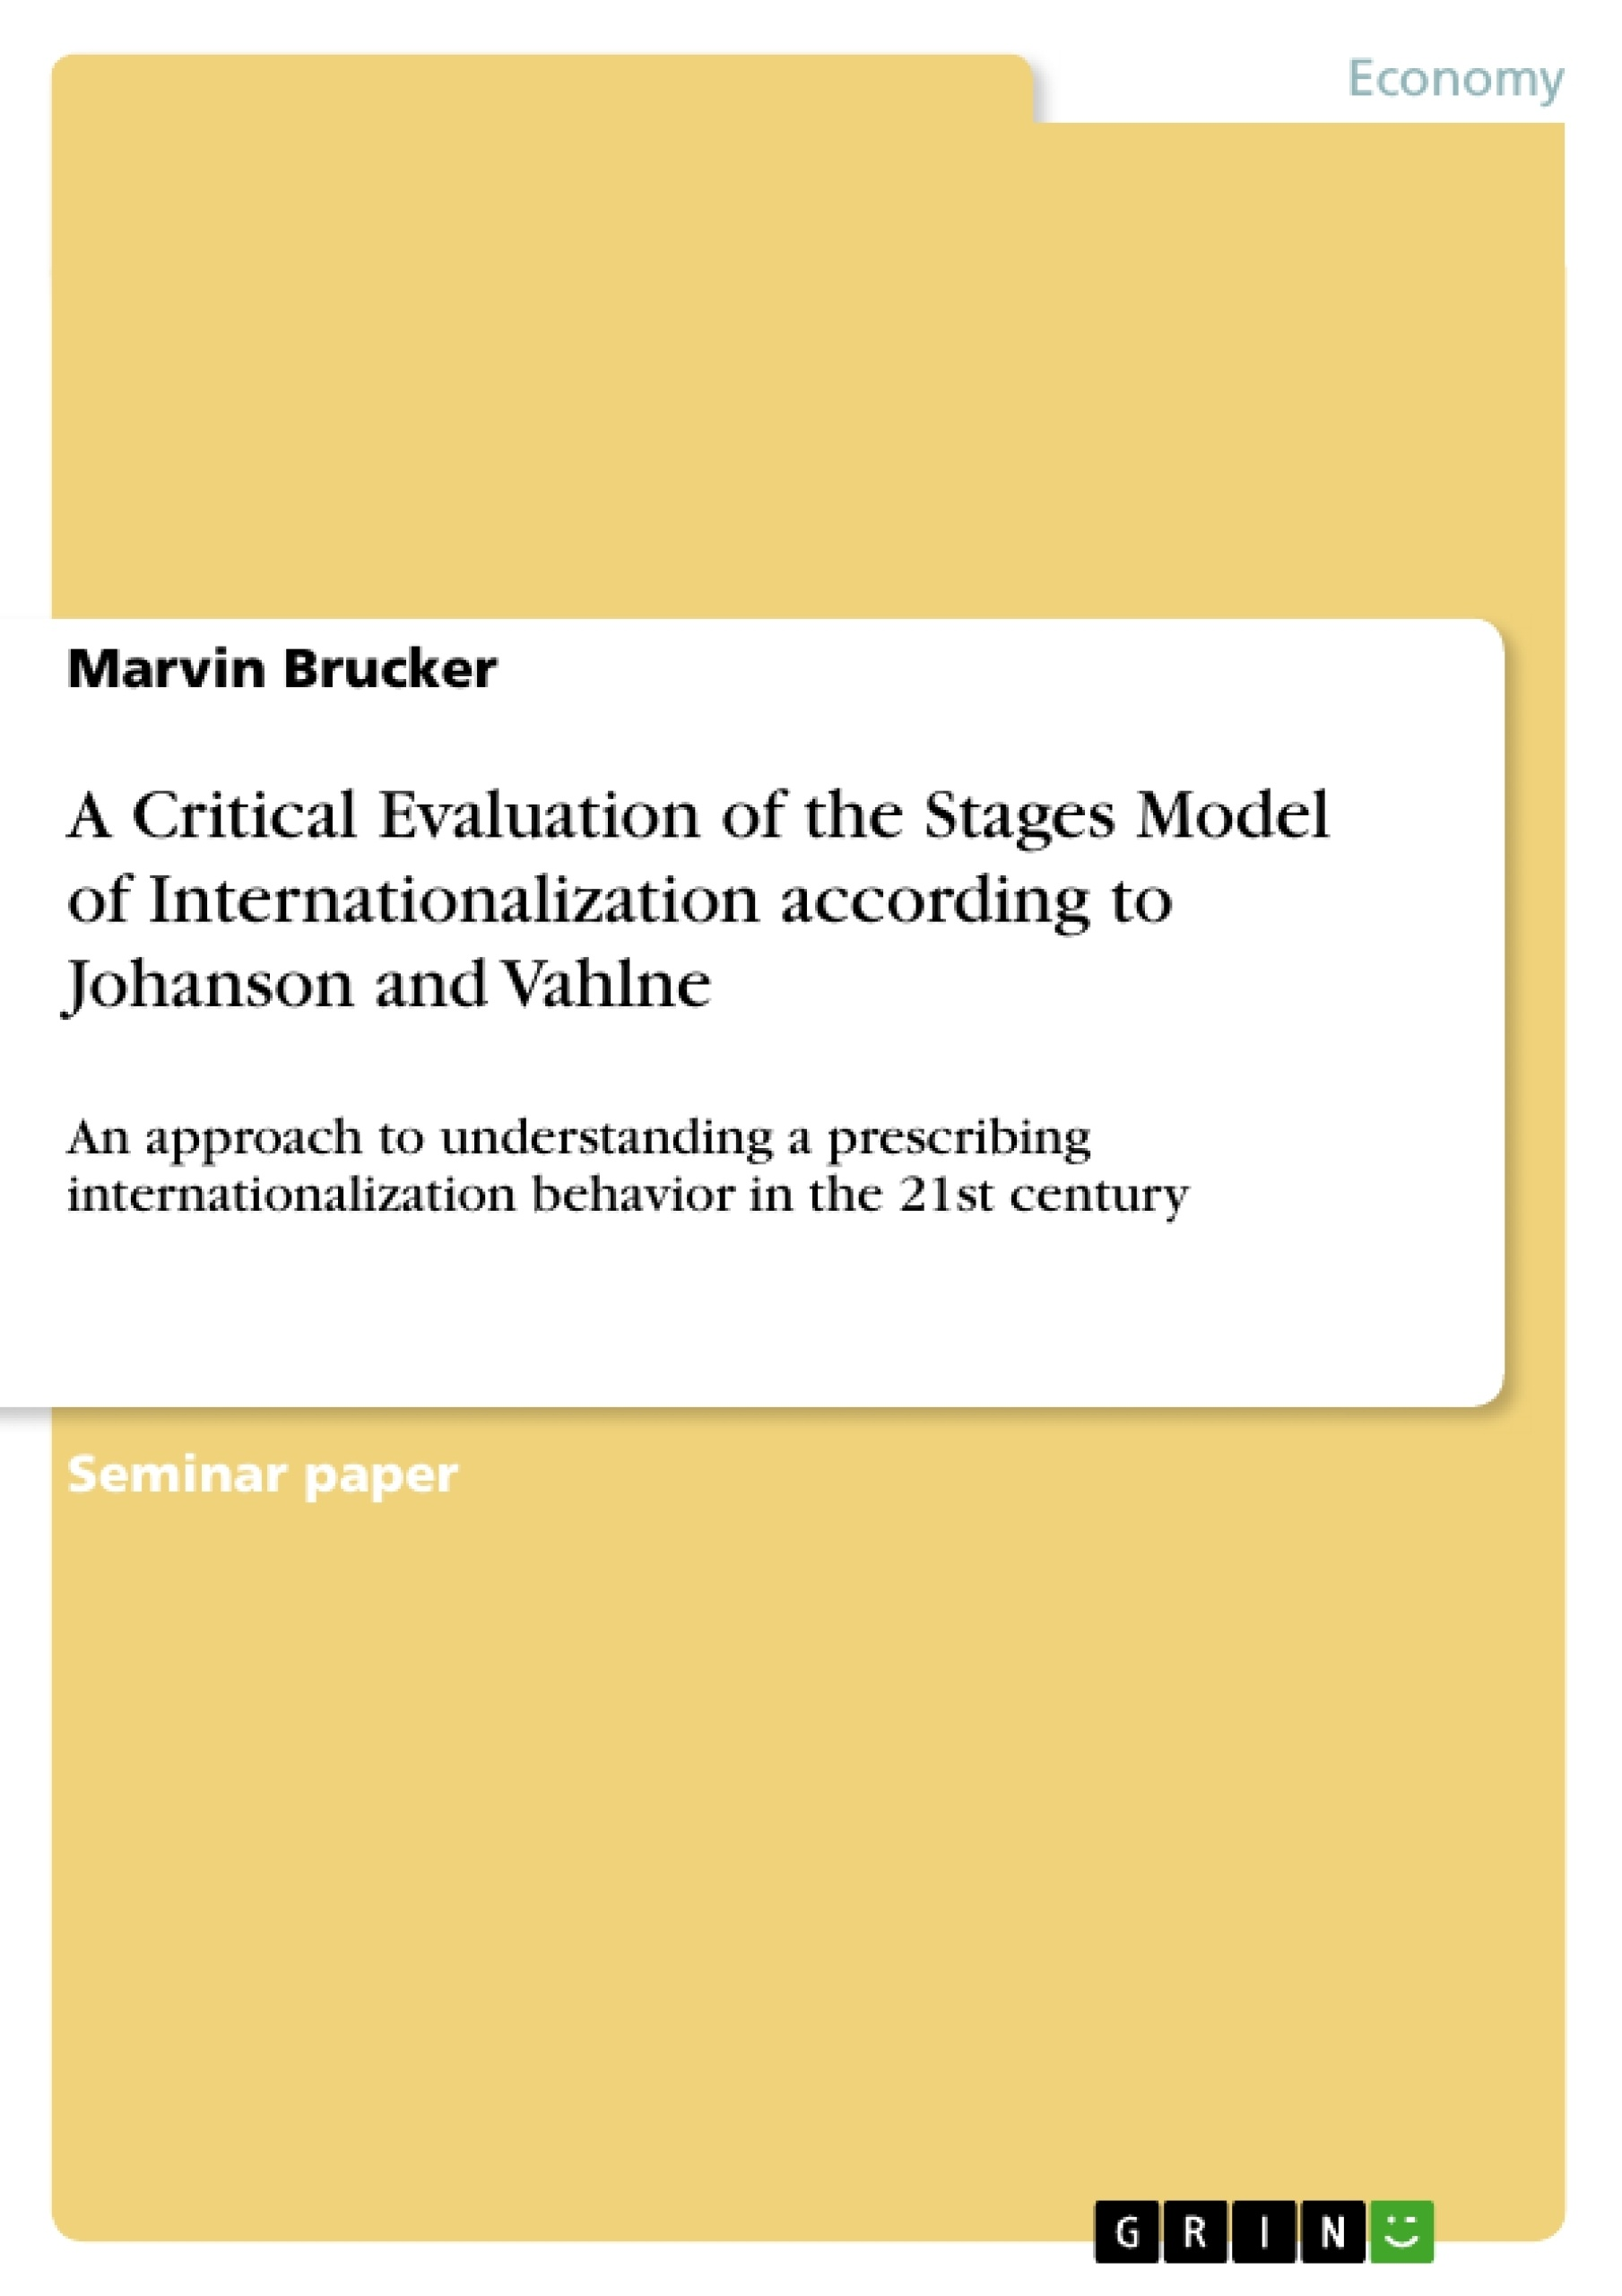 Title: A Critical Evaluation of the Stages Model of Internationalization according to Johanson and Vahlne